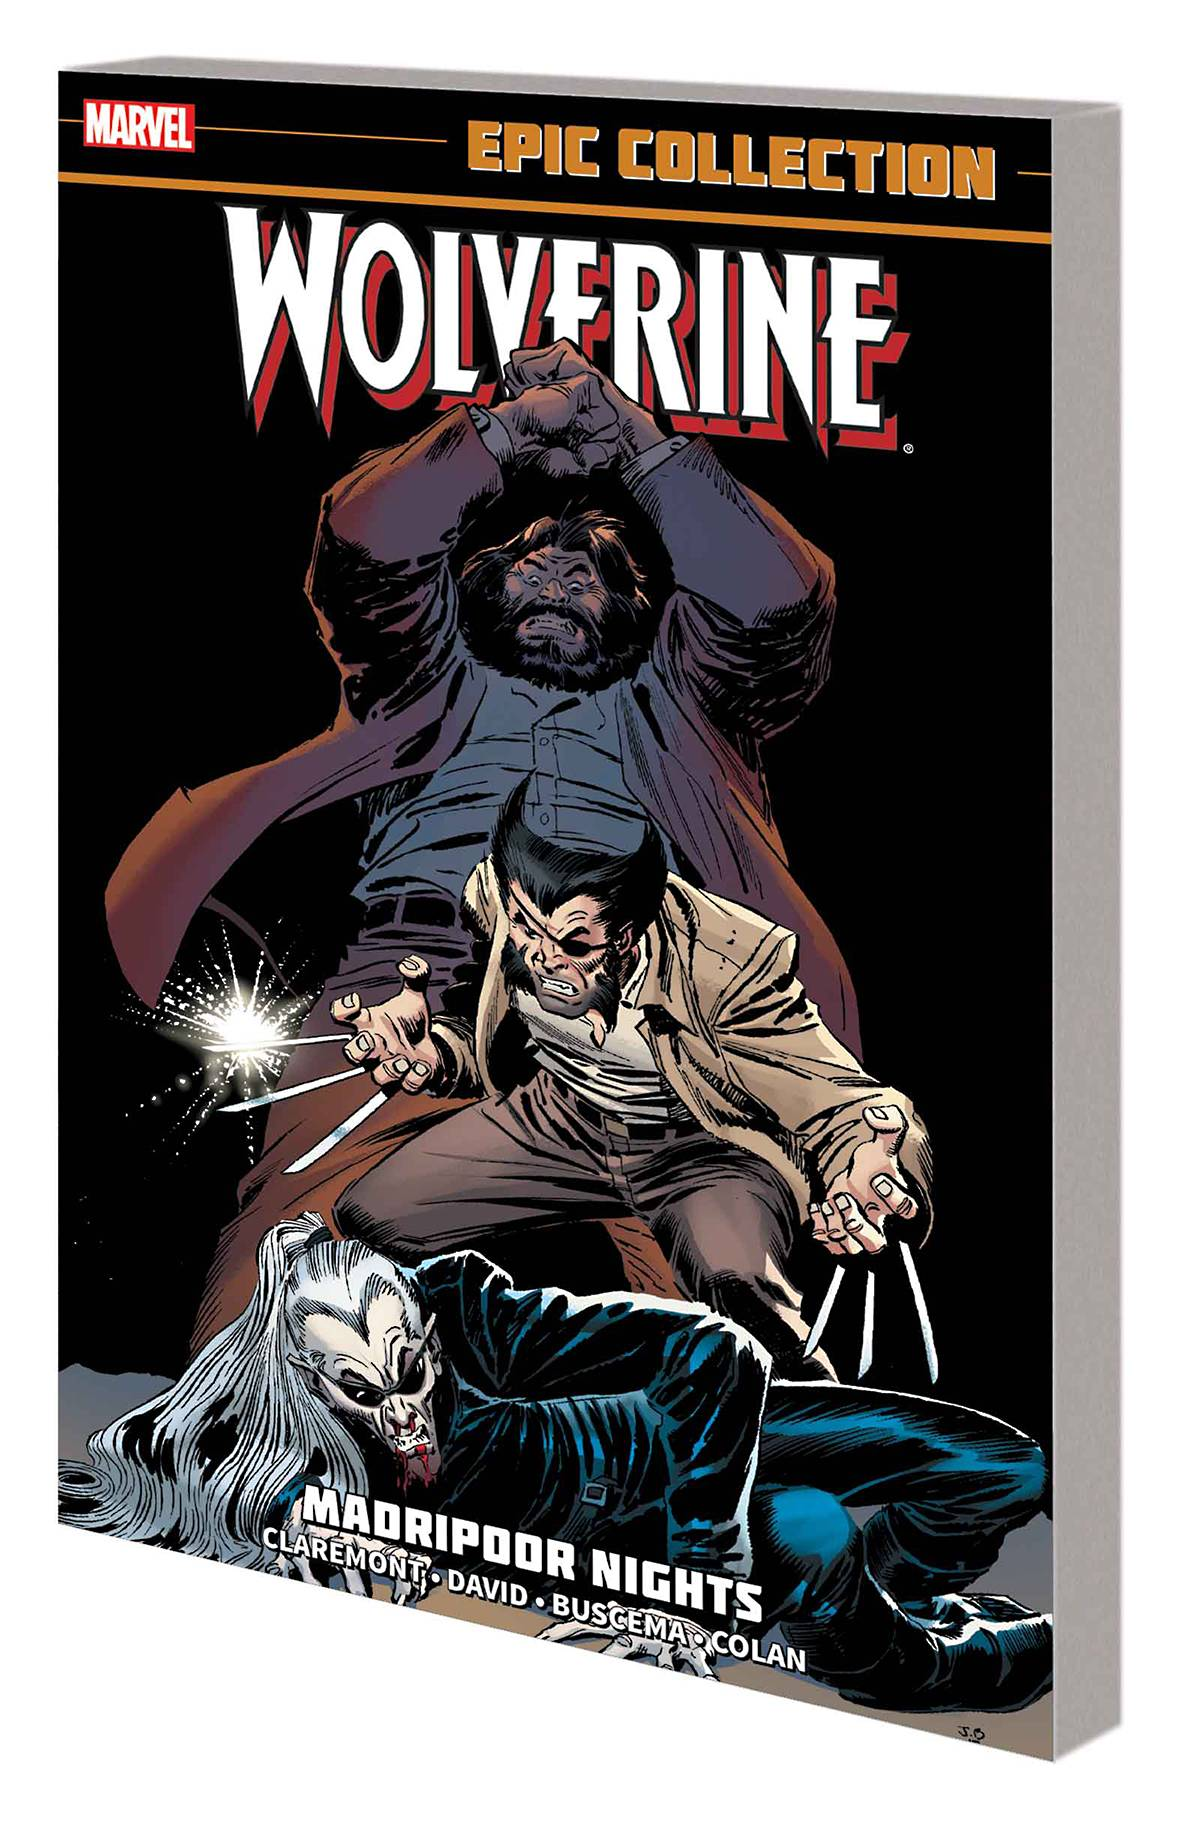 WOLVERINE EPIC COLLECTION TP MADRIPOOR NIGHTS